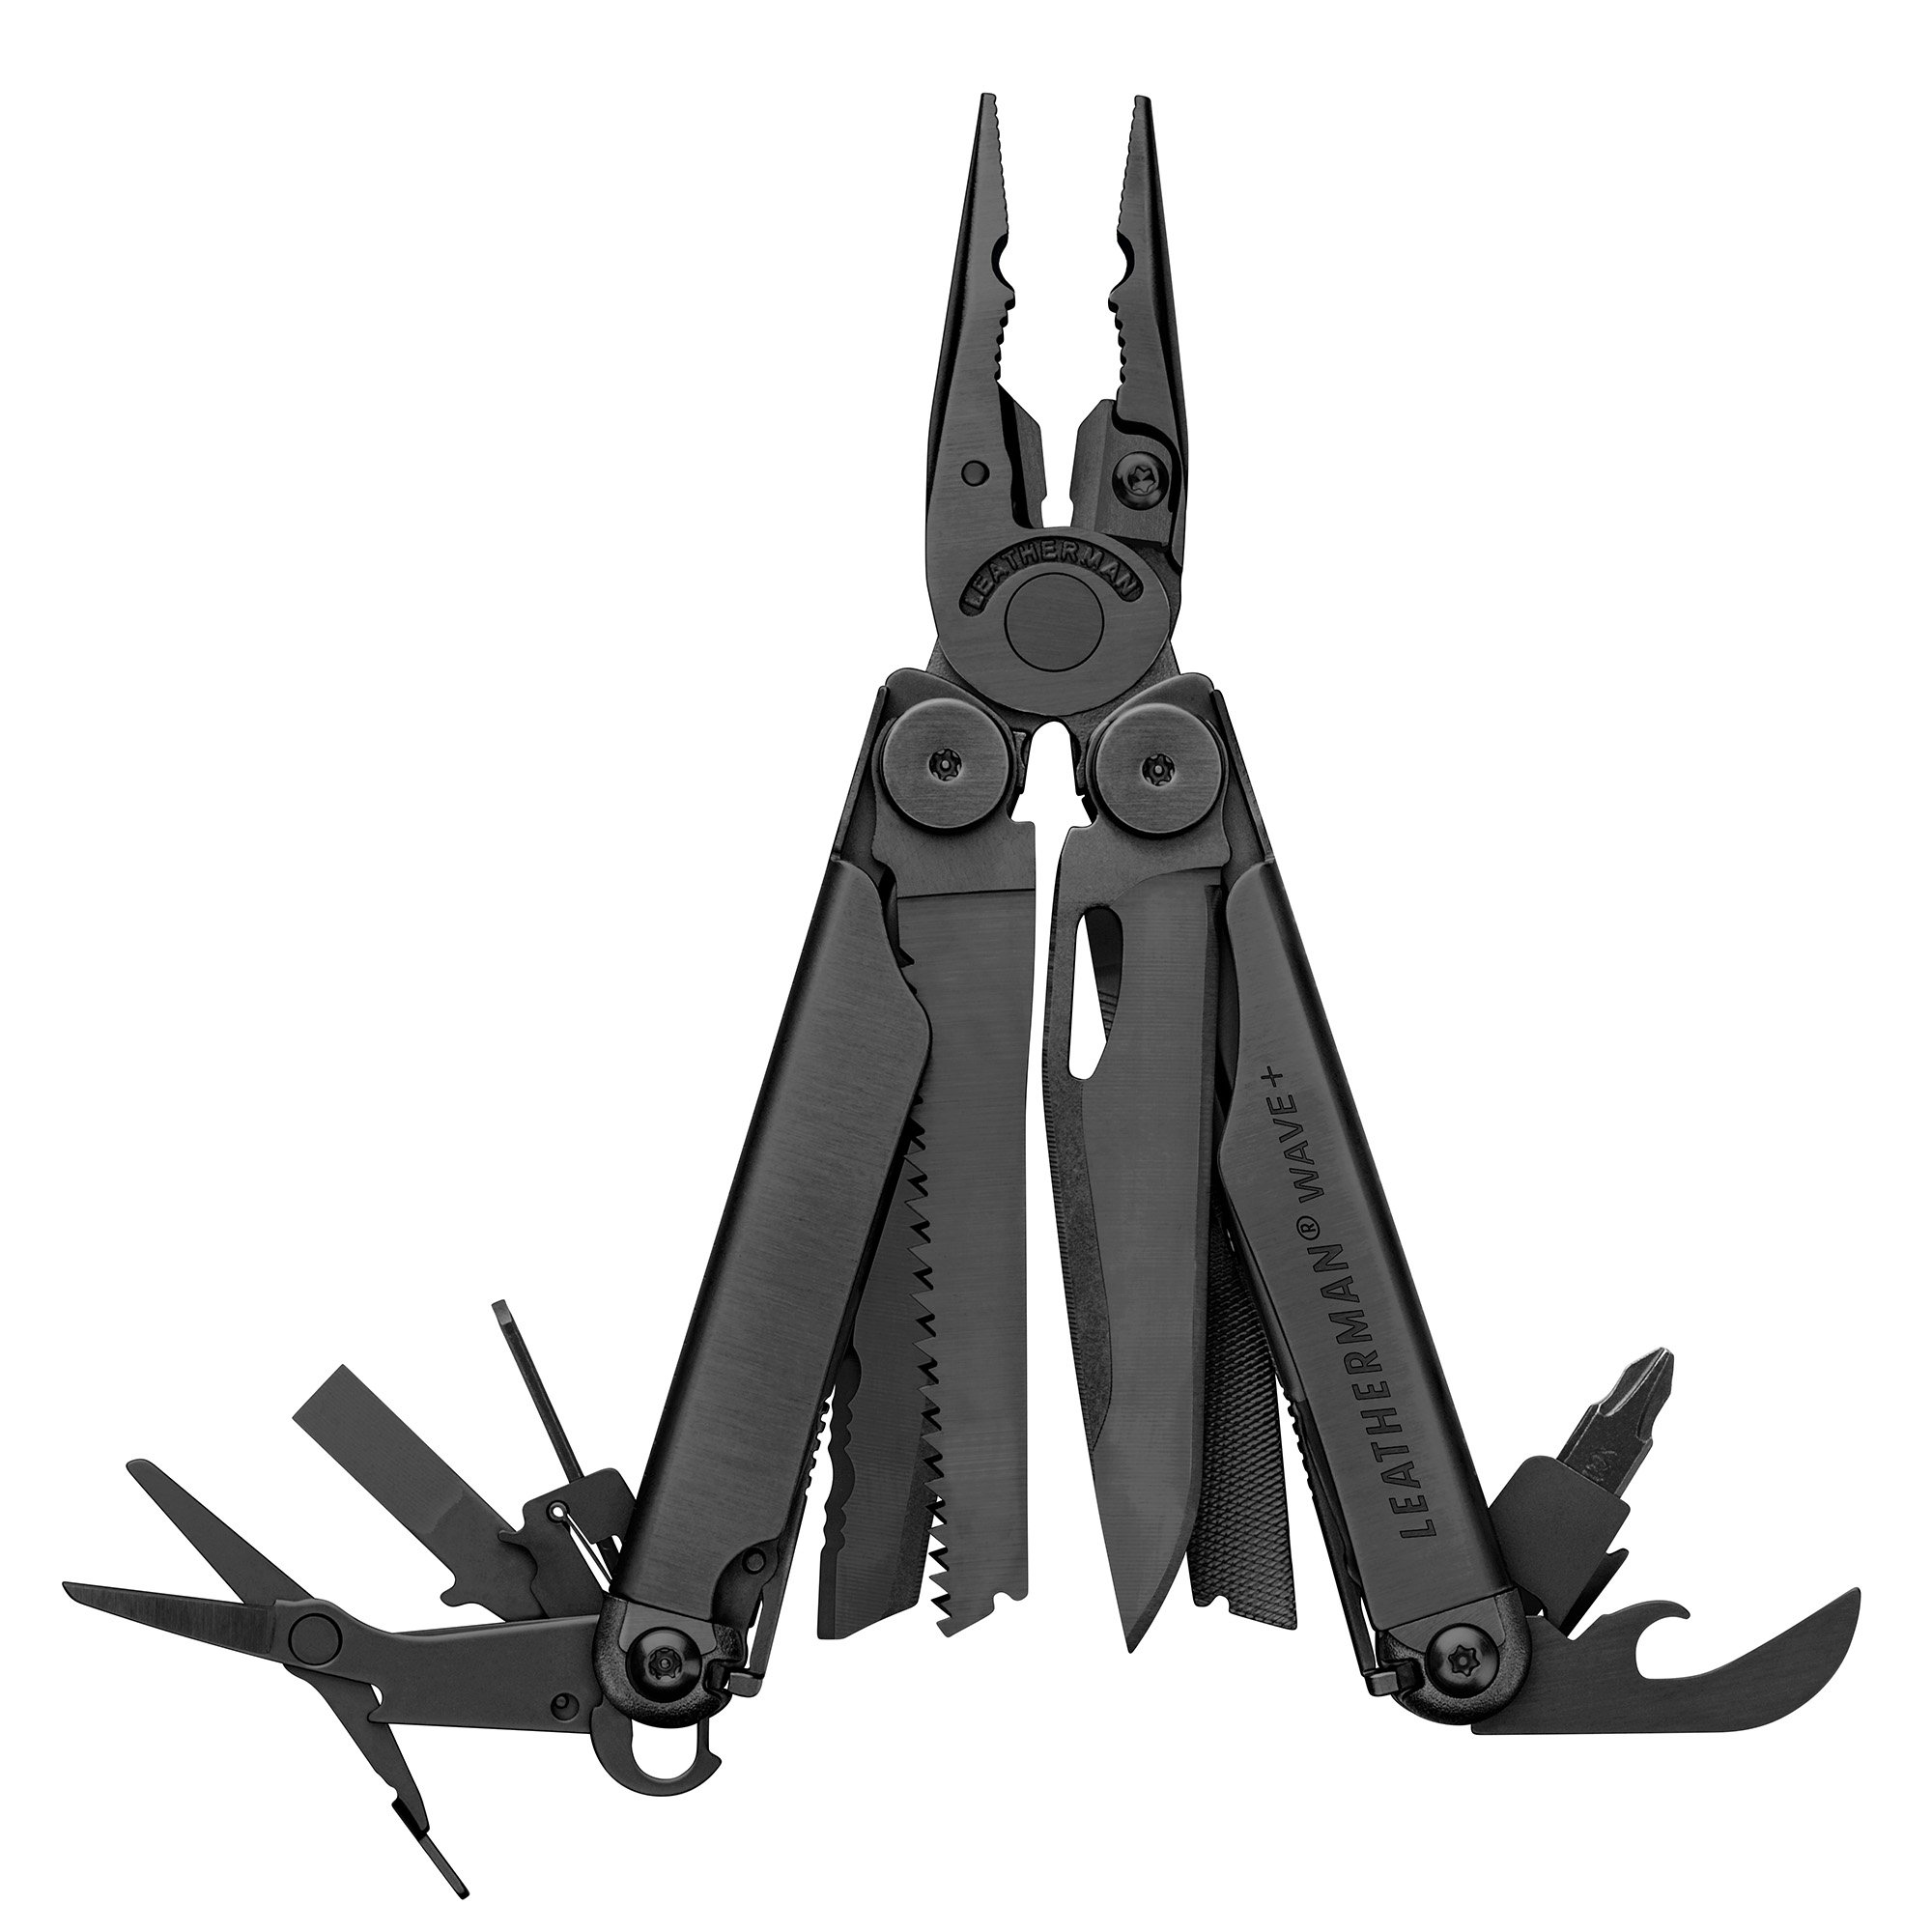 LEATHERMAN - Wave Plus with Cap Crimper Multitool, Black